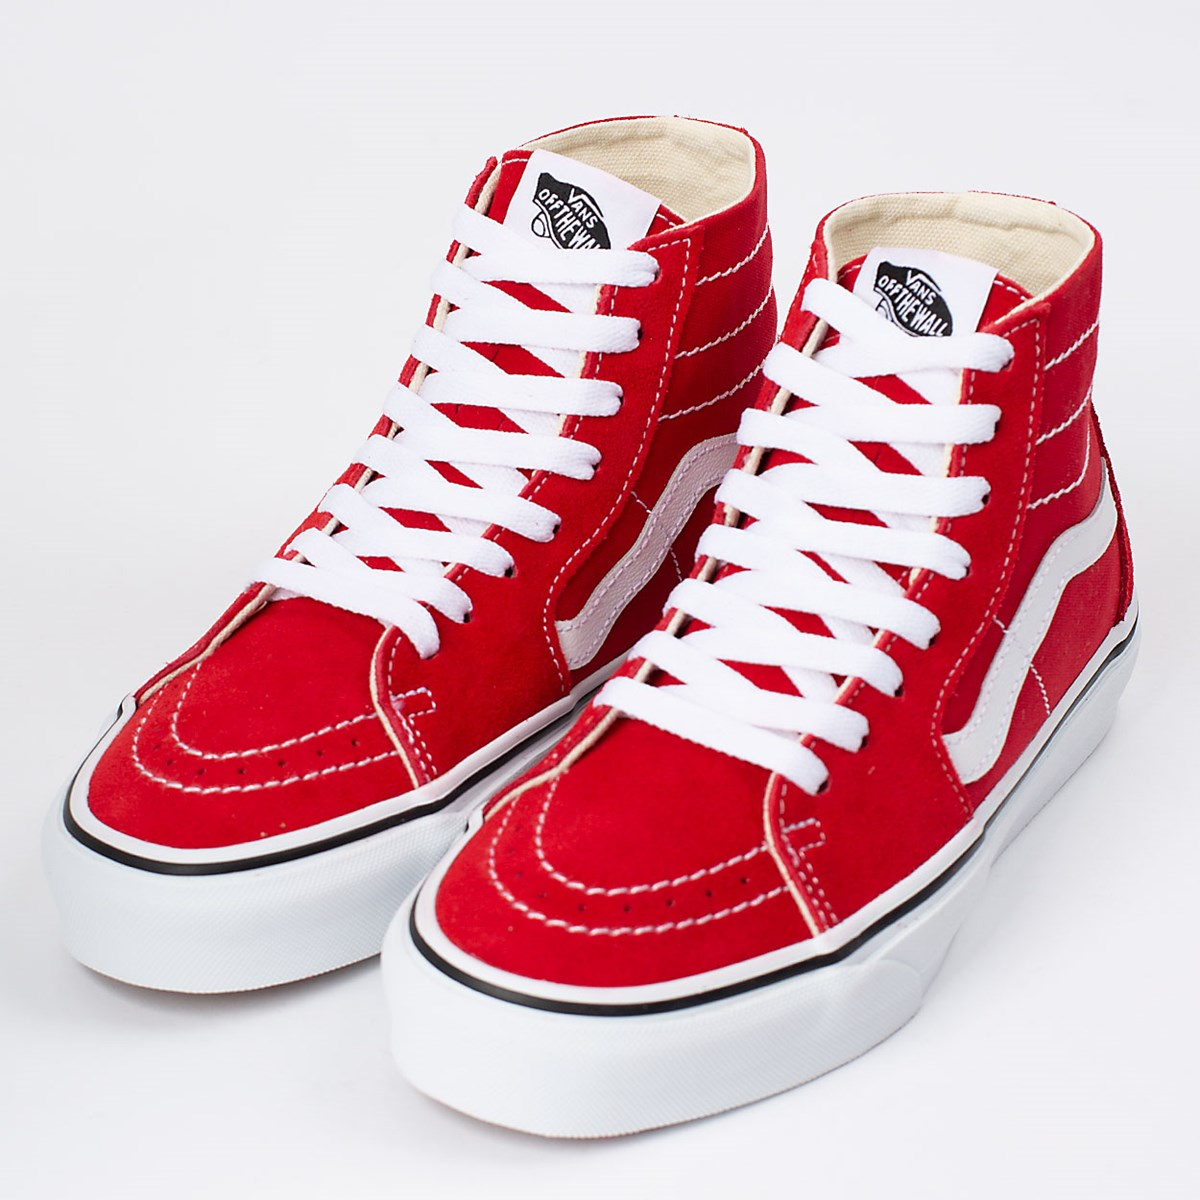 Tênis Vans Sk8 Hi Tapered Racing Red True White VN0A4U16JV6